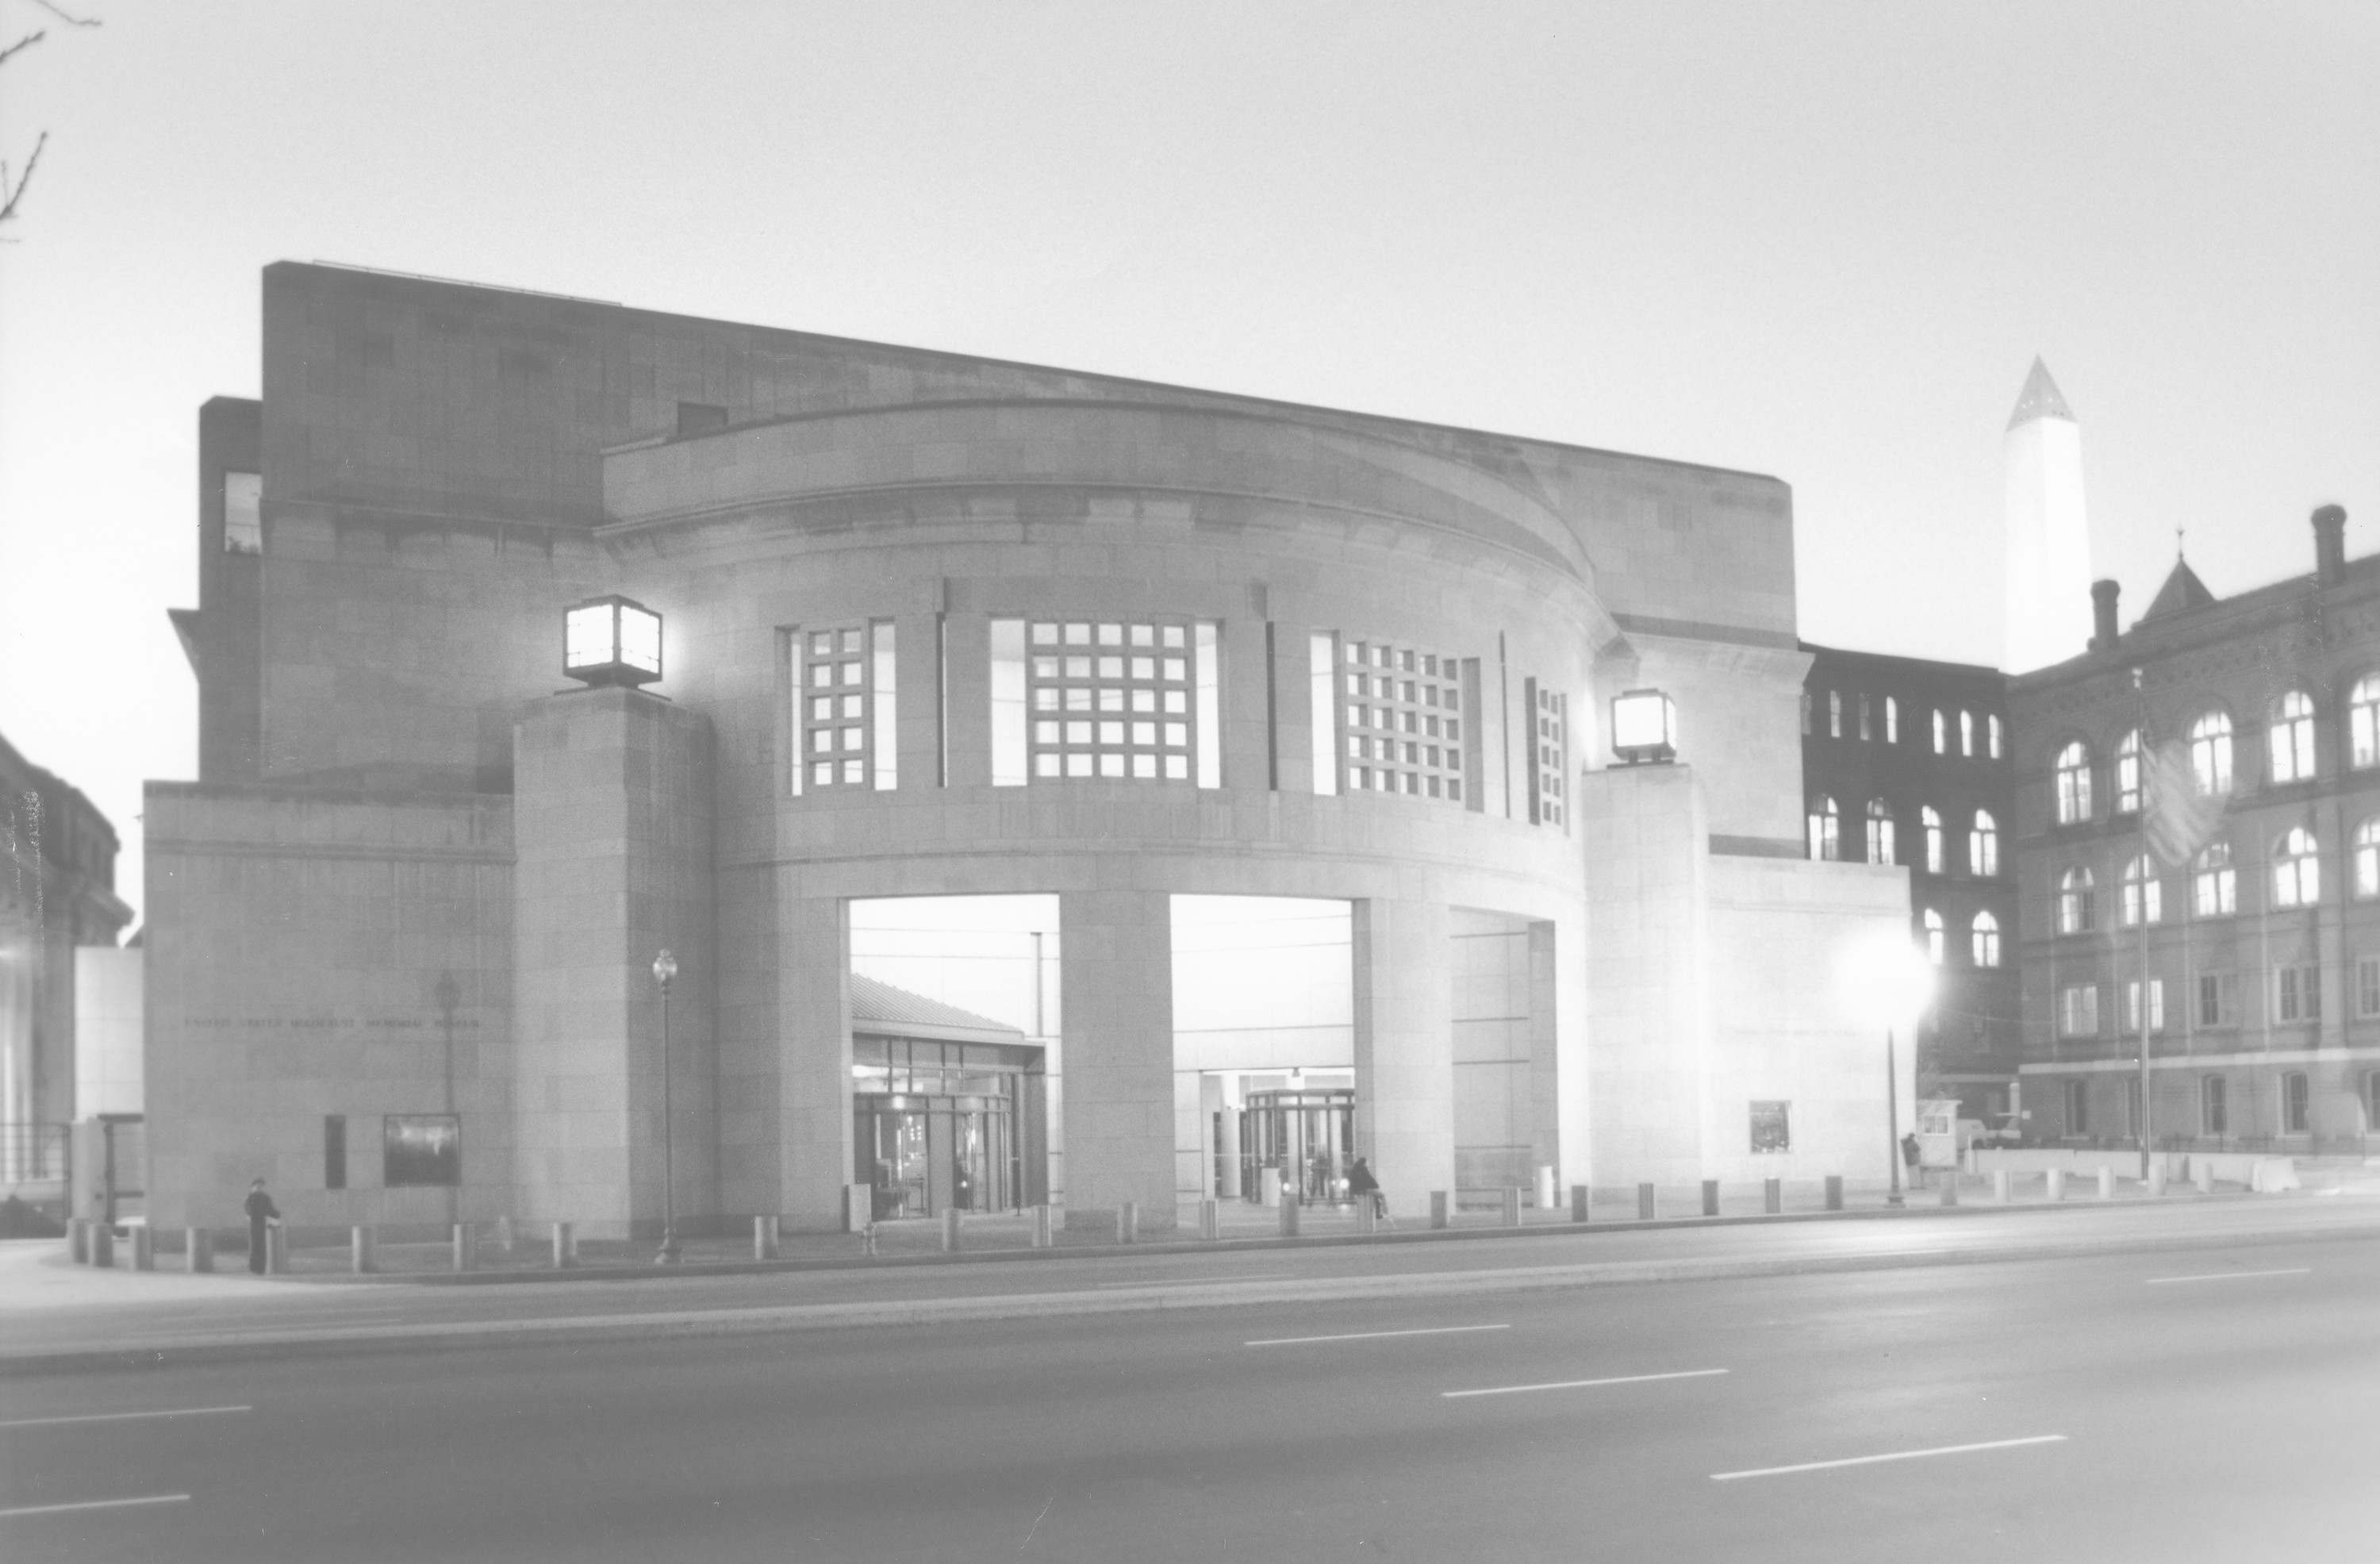 Nighttime view of the 14th Street entrance to the U.S. Holocaust Memorial Museum, with the Washington Monument in the background.